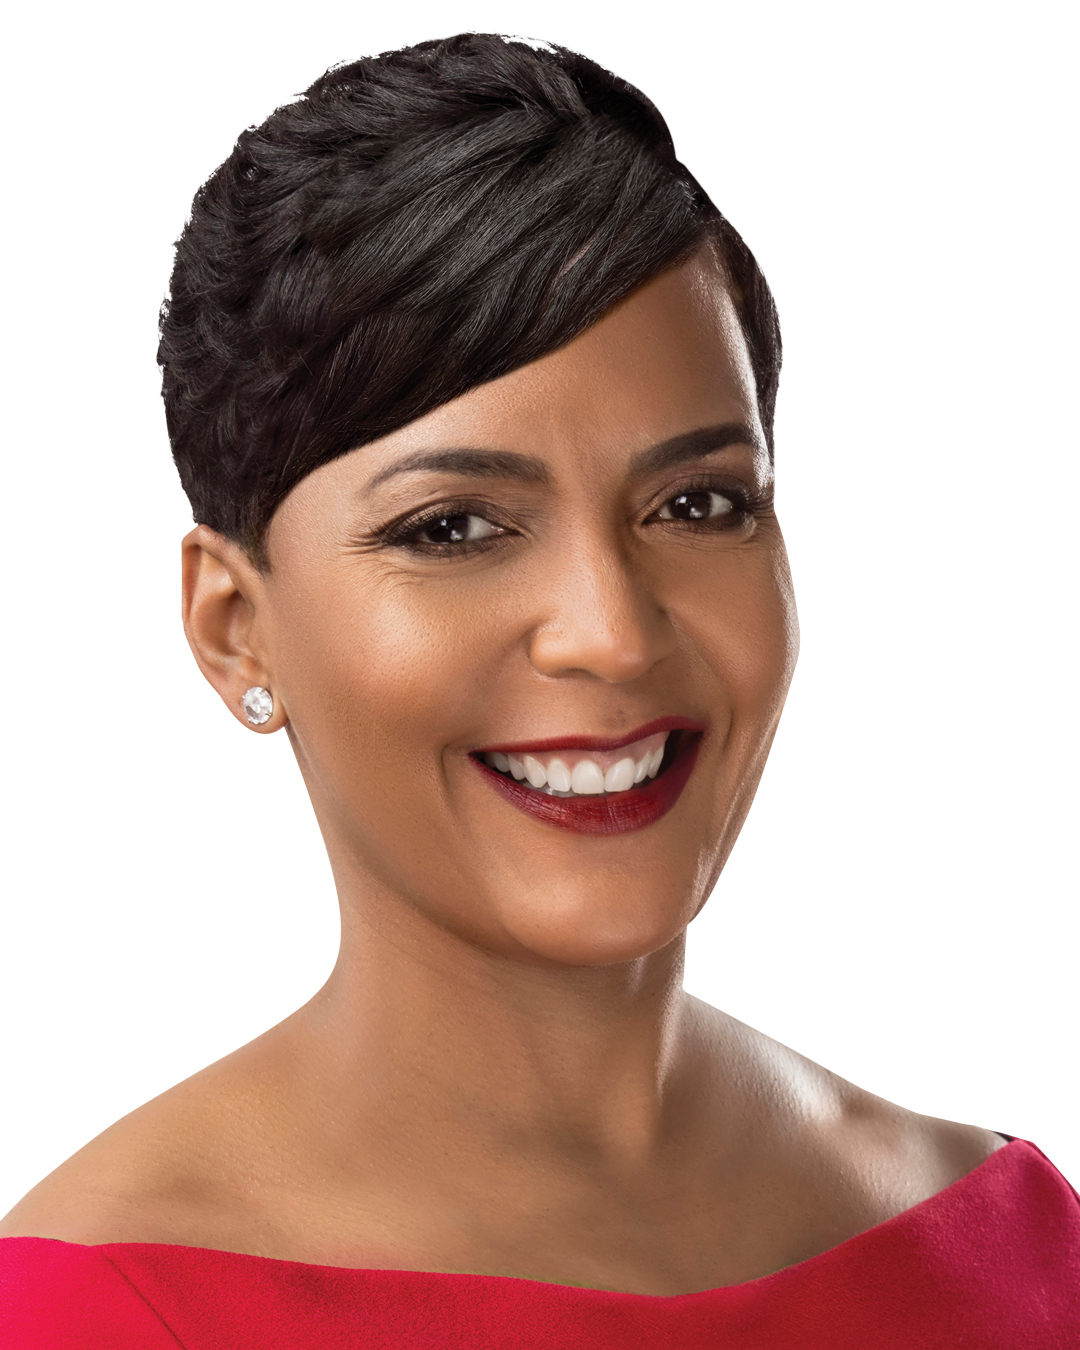 Atlanta 500: Keisha Lance Bottoms